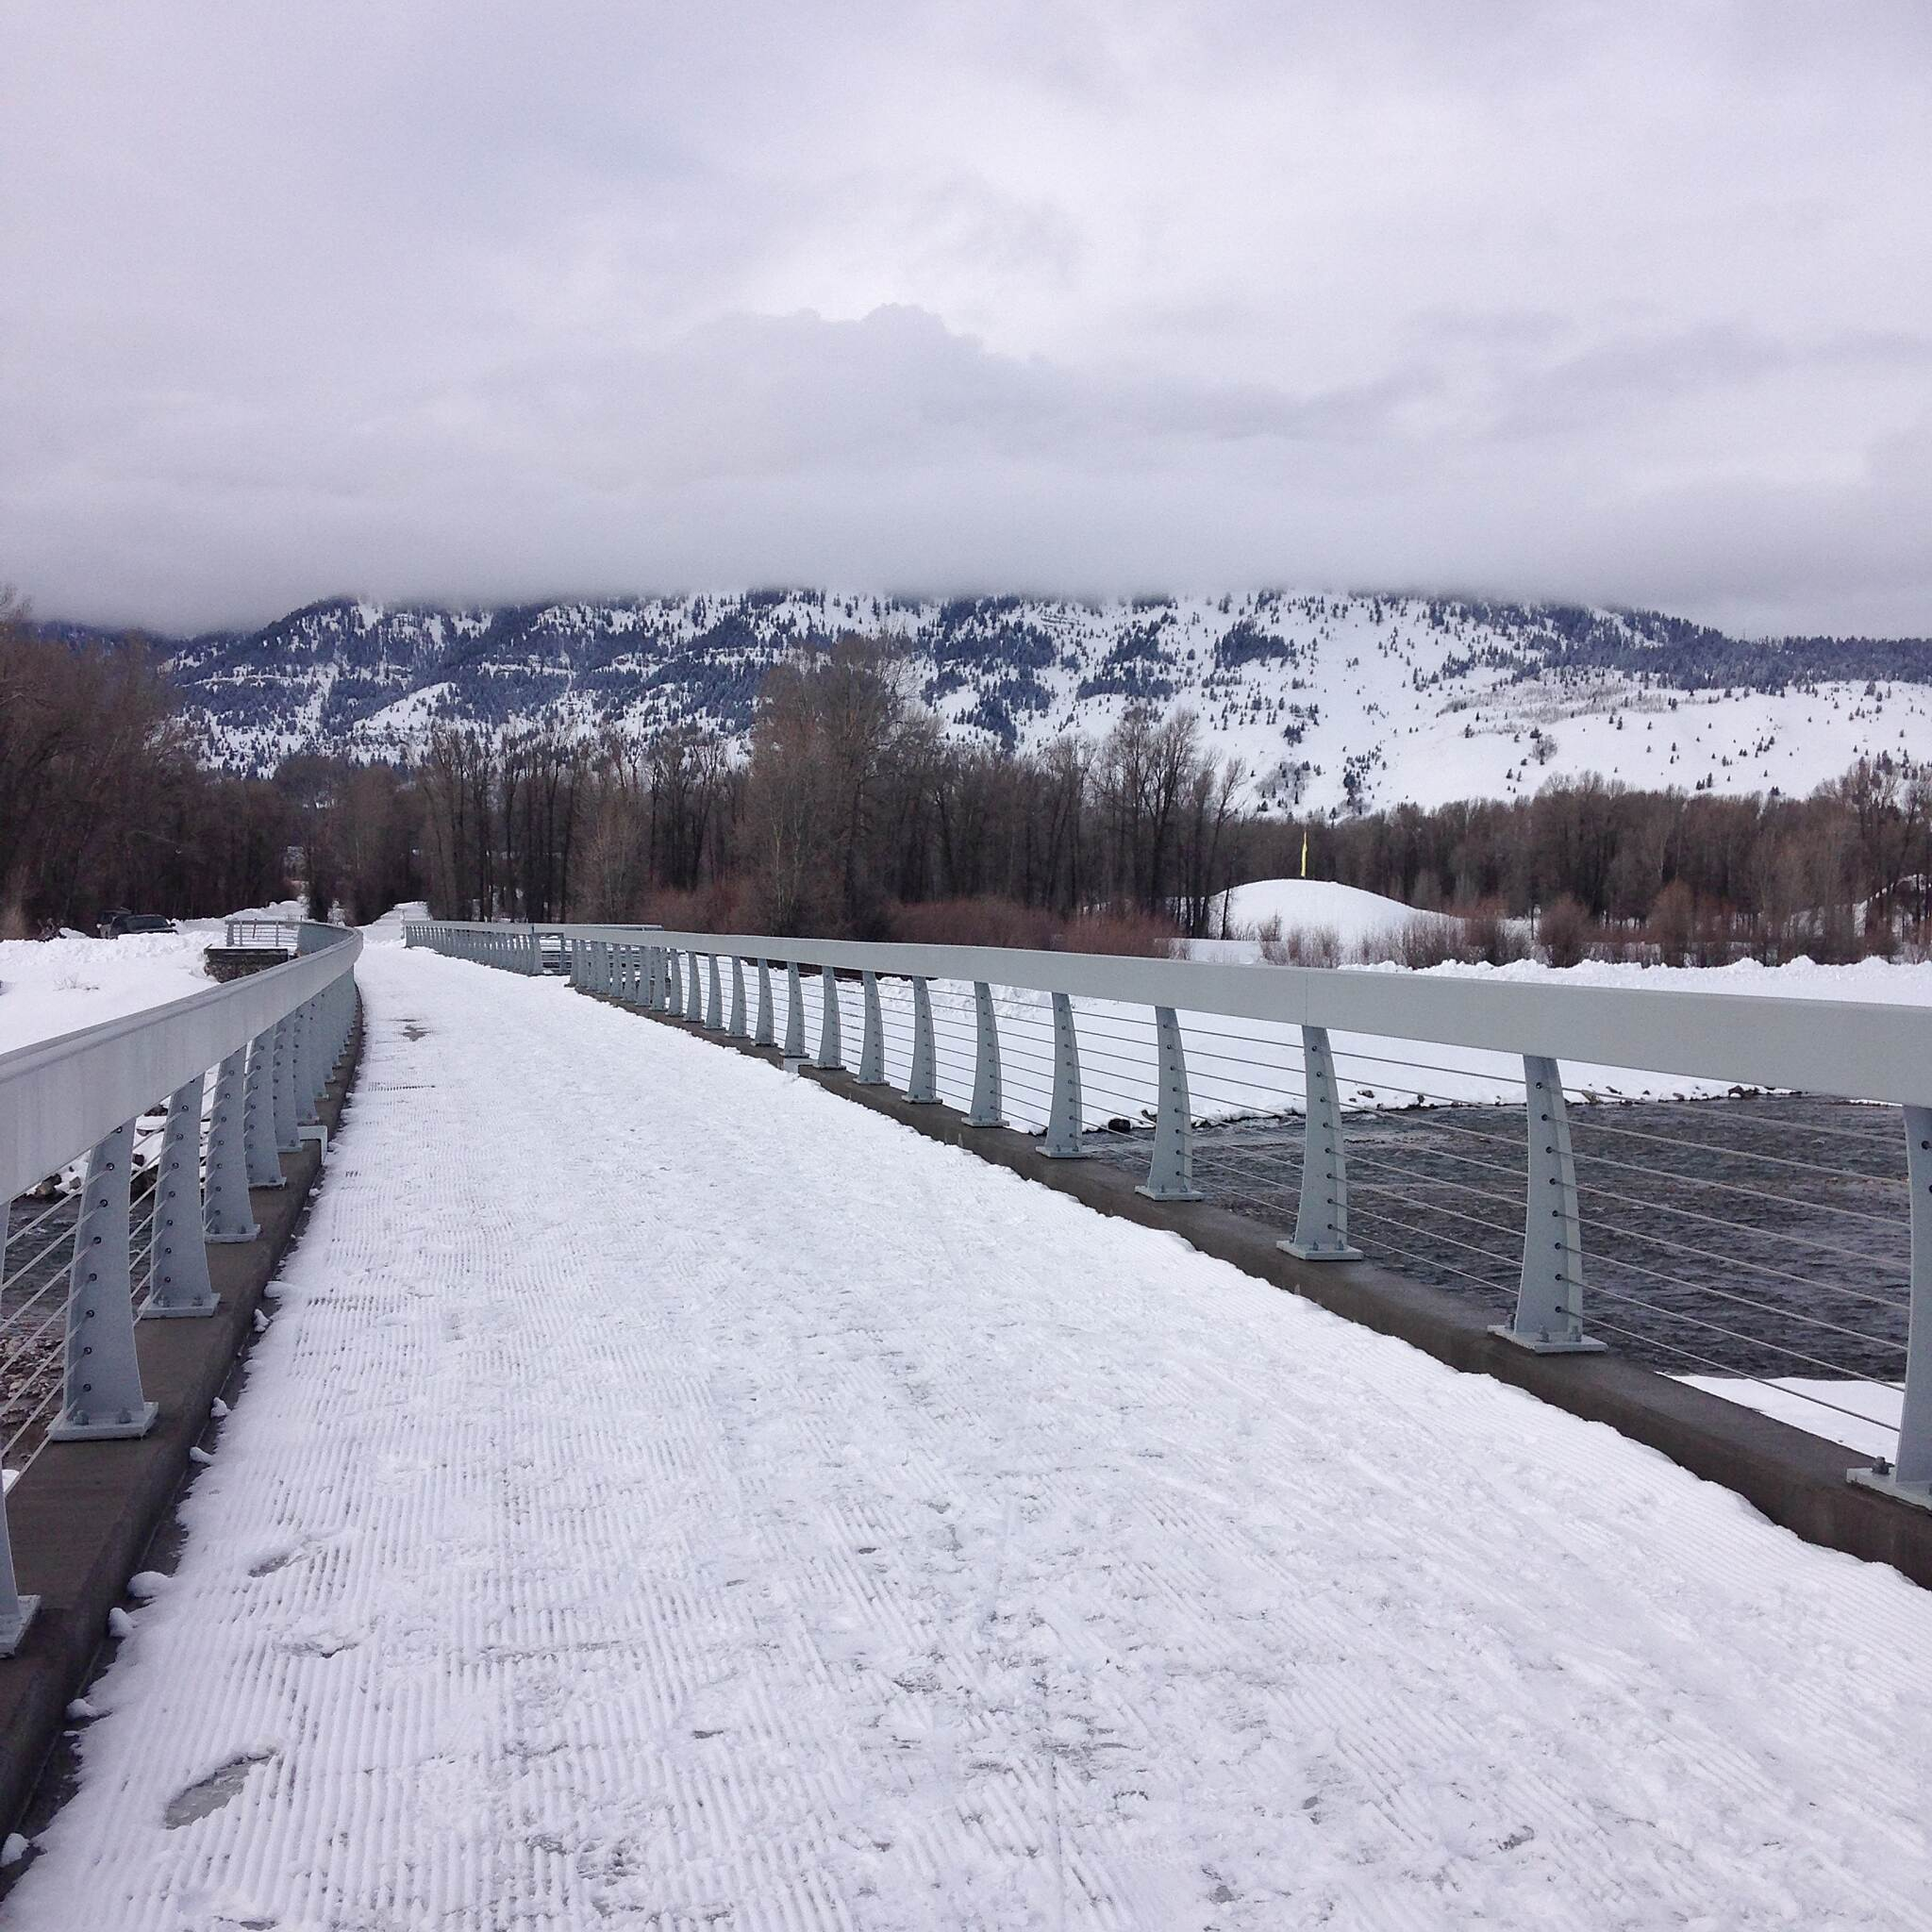 Jackson Hole Community Pathway System Snake River Bike/Ped Bridge Bridge over the Snake River, a vital connection between the Towns of Jackson and Wilson. Pathways extending from each bank will connect the two communities. The bridge was completed in the Fall of 2014.